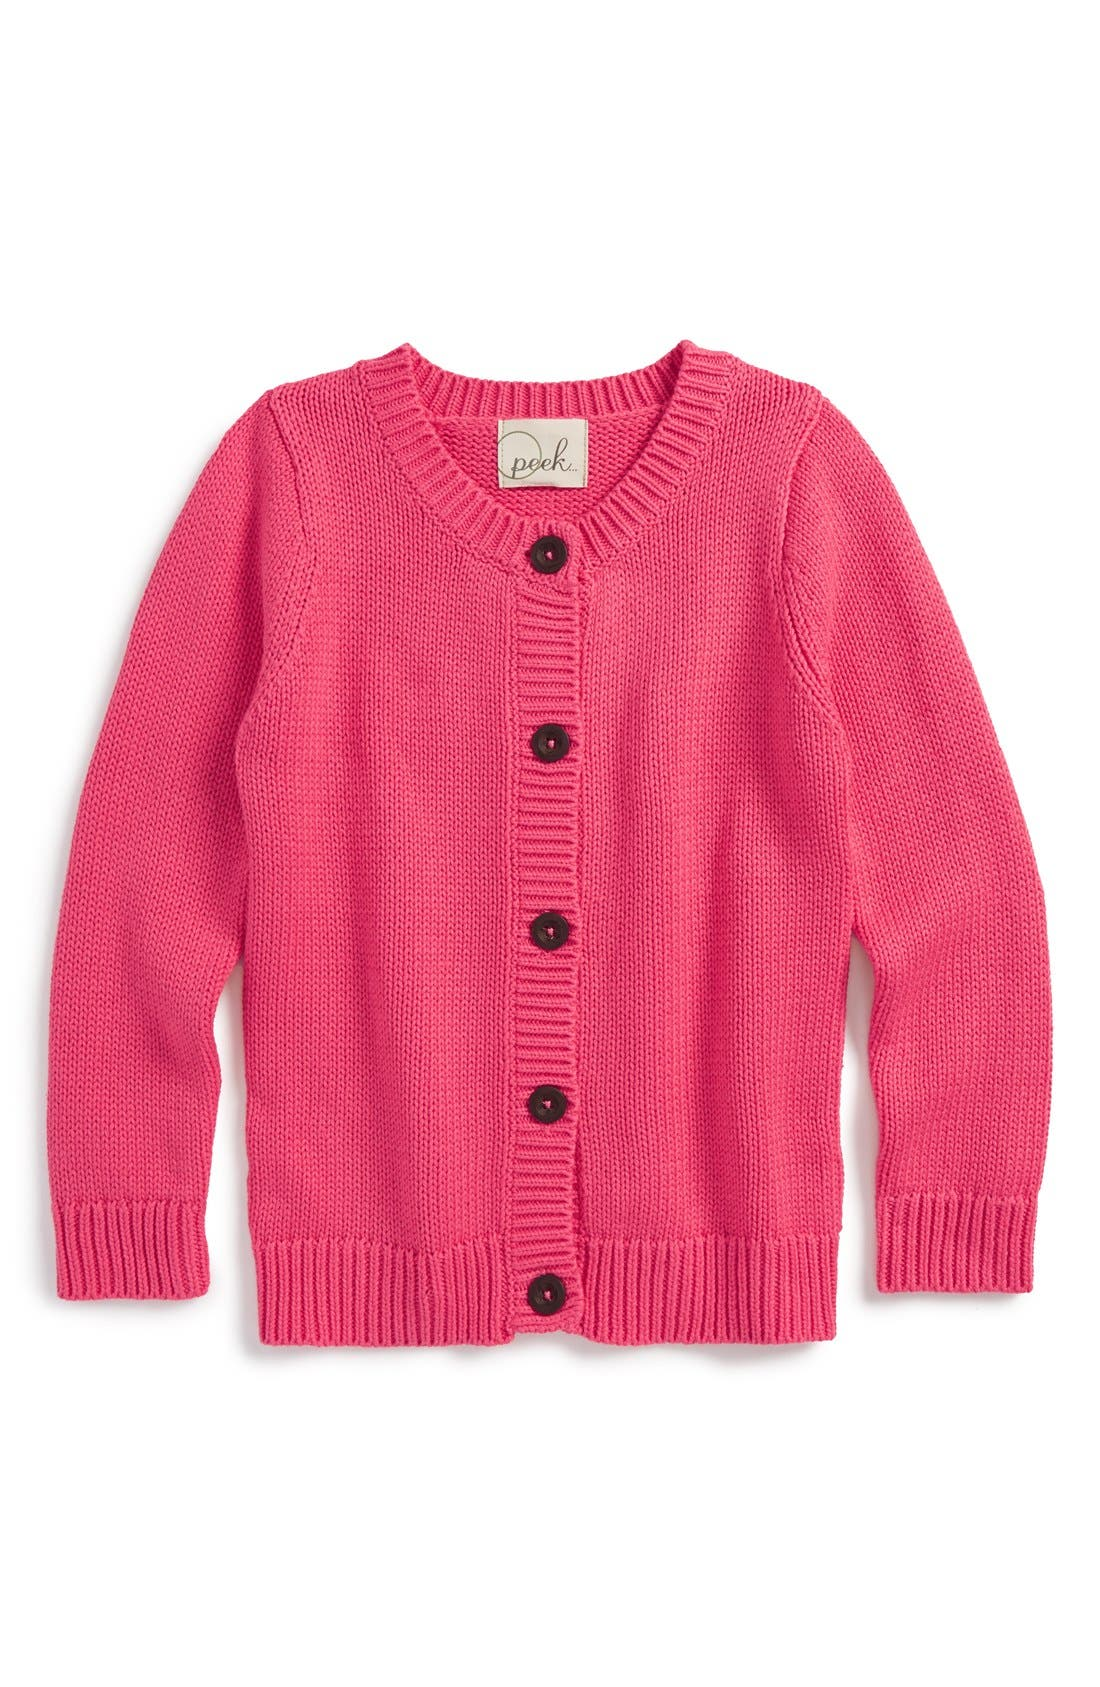 Alternate Image 1 Selected - Peek 'Brianna' Knit Cardigan (Toddler Girls, Little Girls & Big Girls)